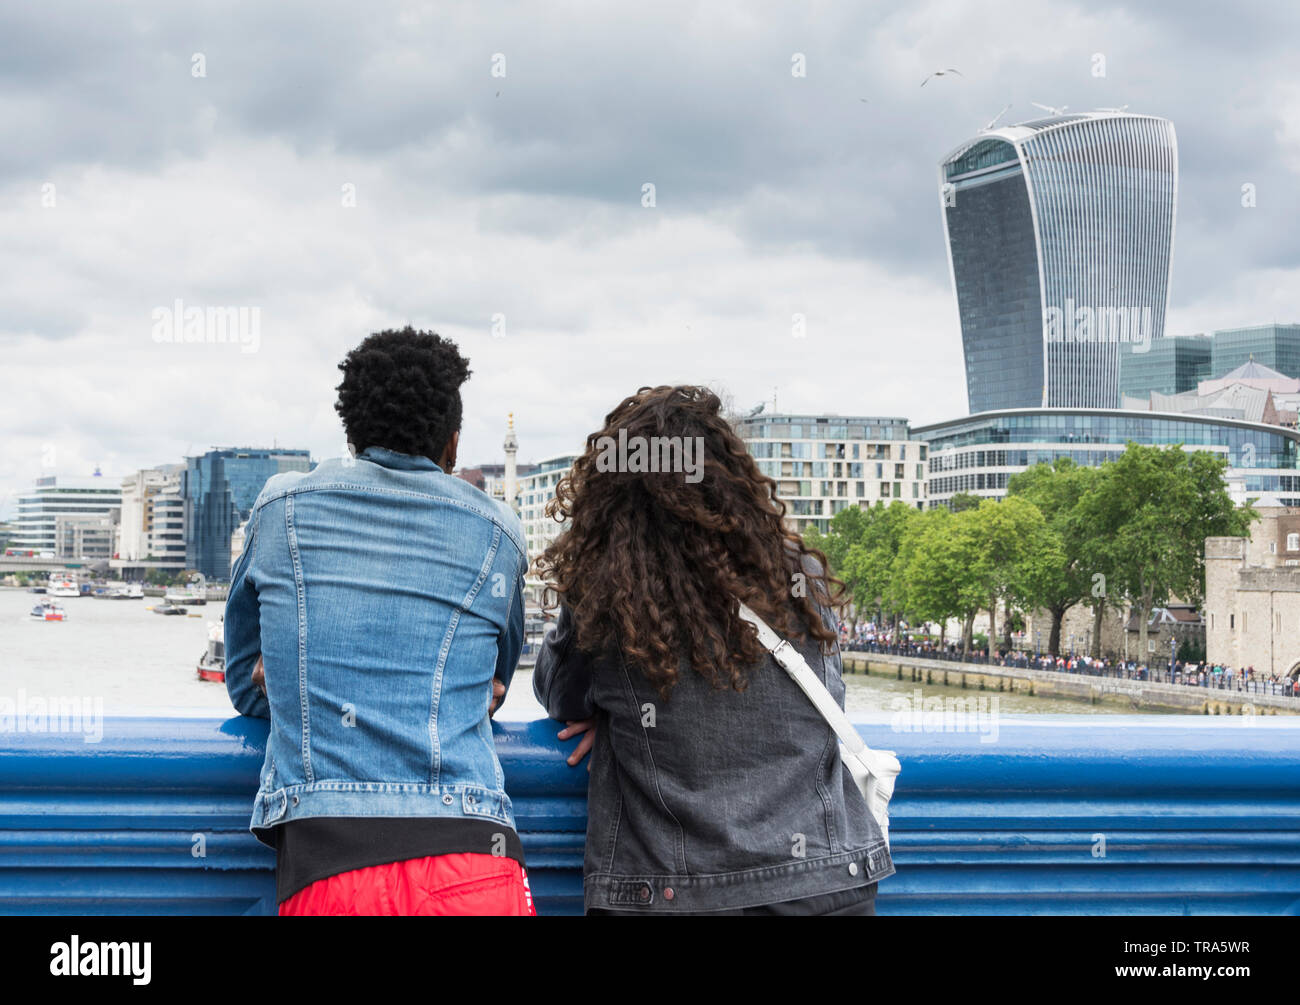 A young couple on Tower Bridge enjoying the view of the City of London's ever-changing skyline as new skyscrapers are added to the mix - Stock Image